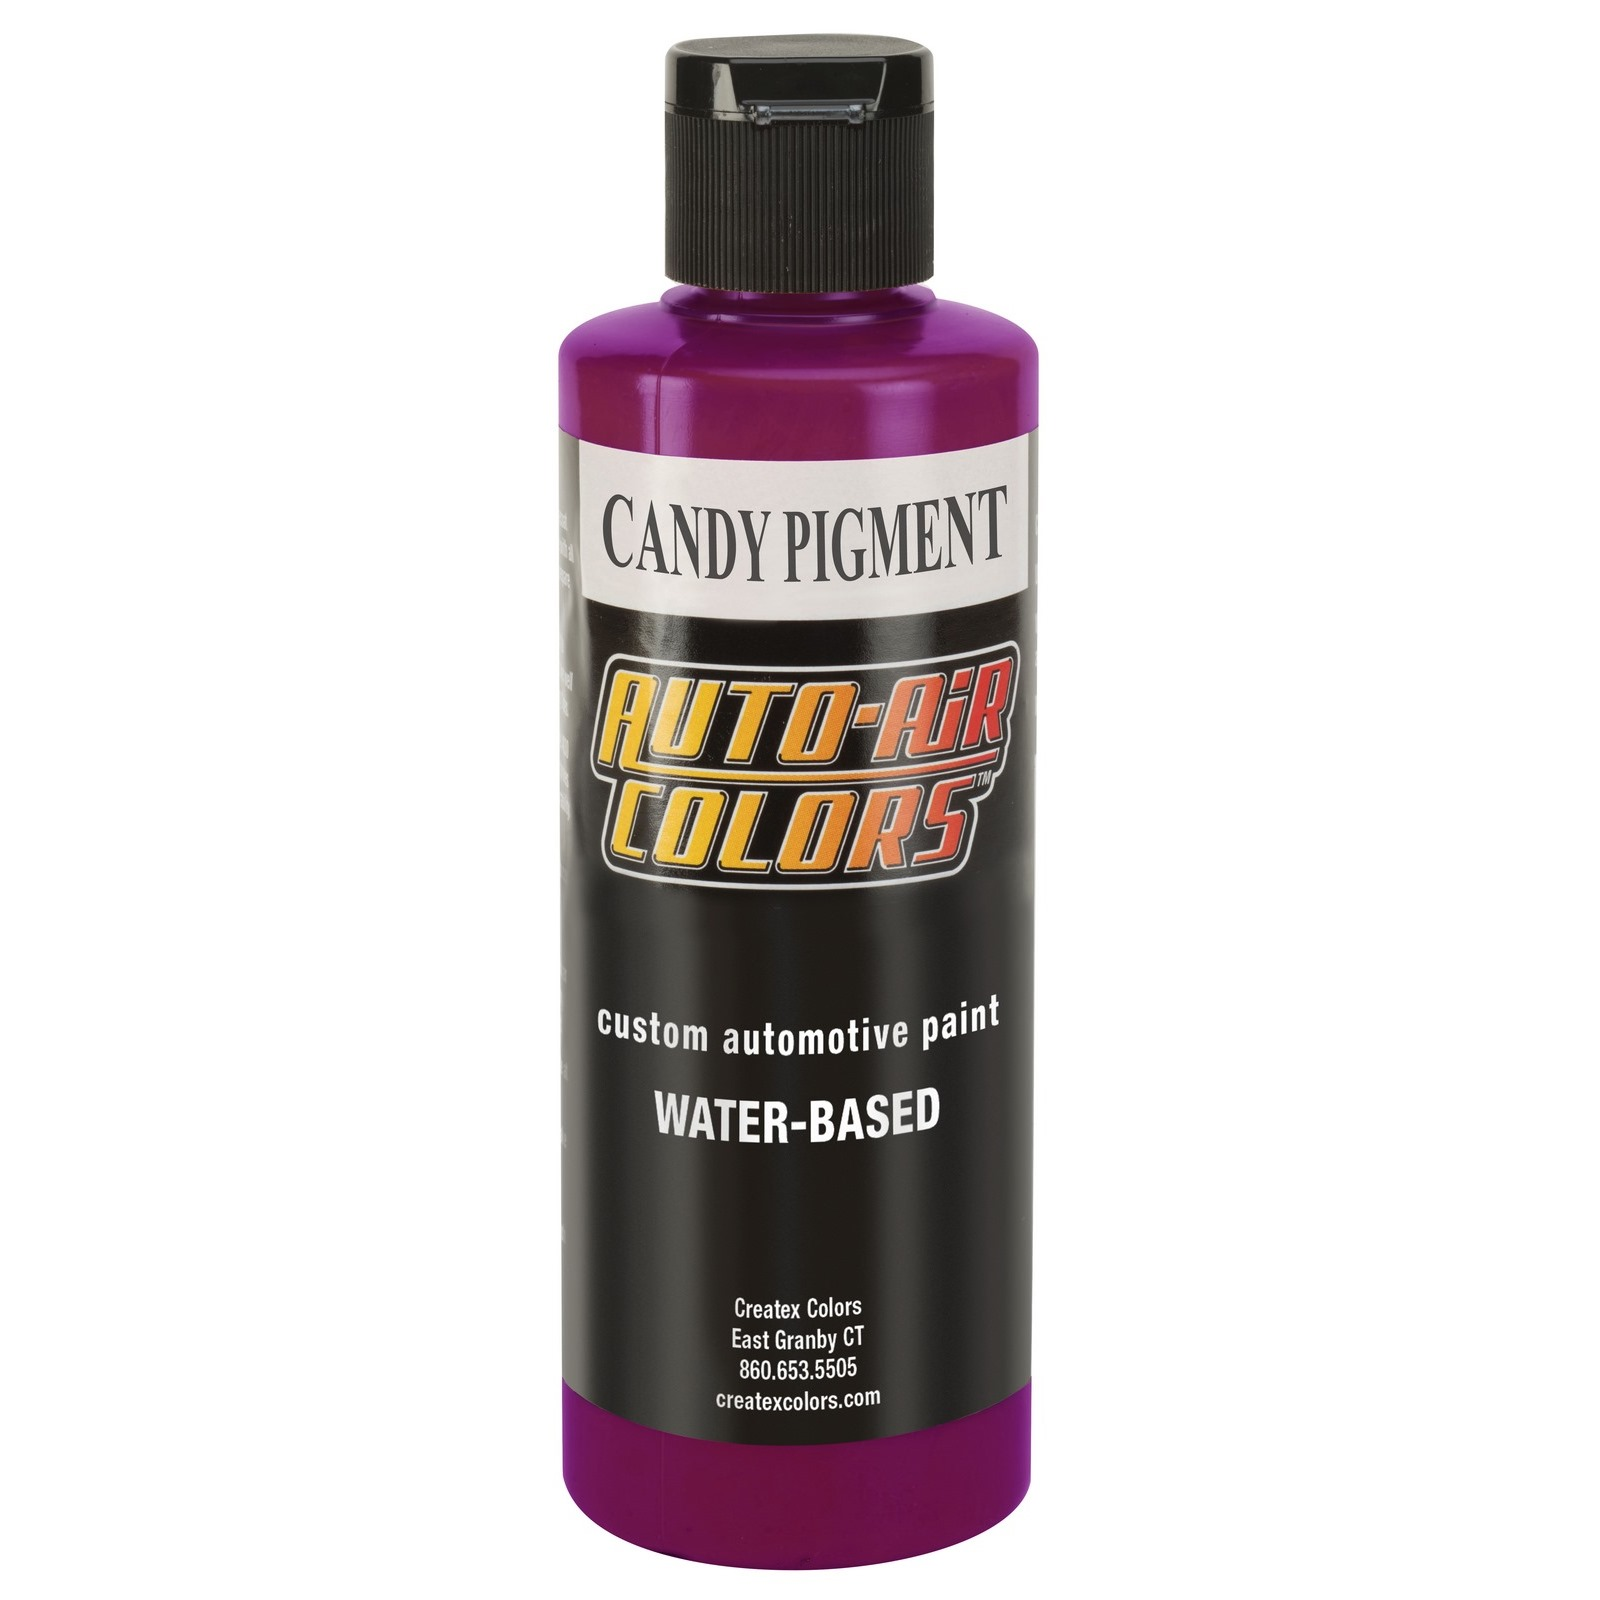 Auto-Air Colors 4611 - Candy Pigment Magenta